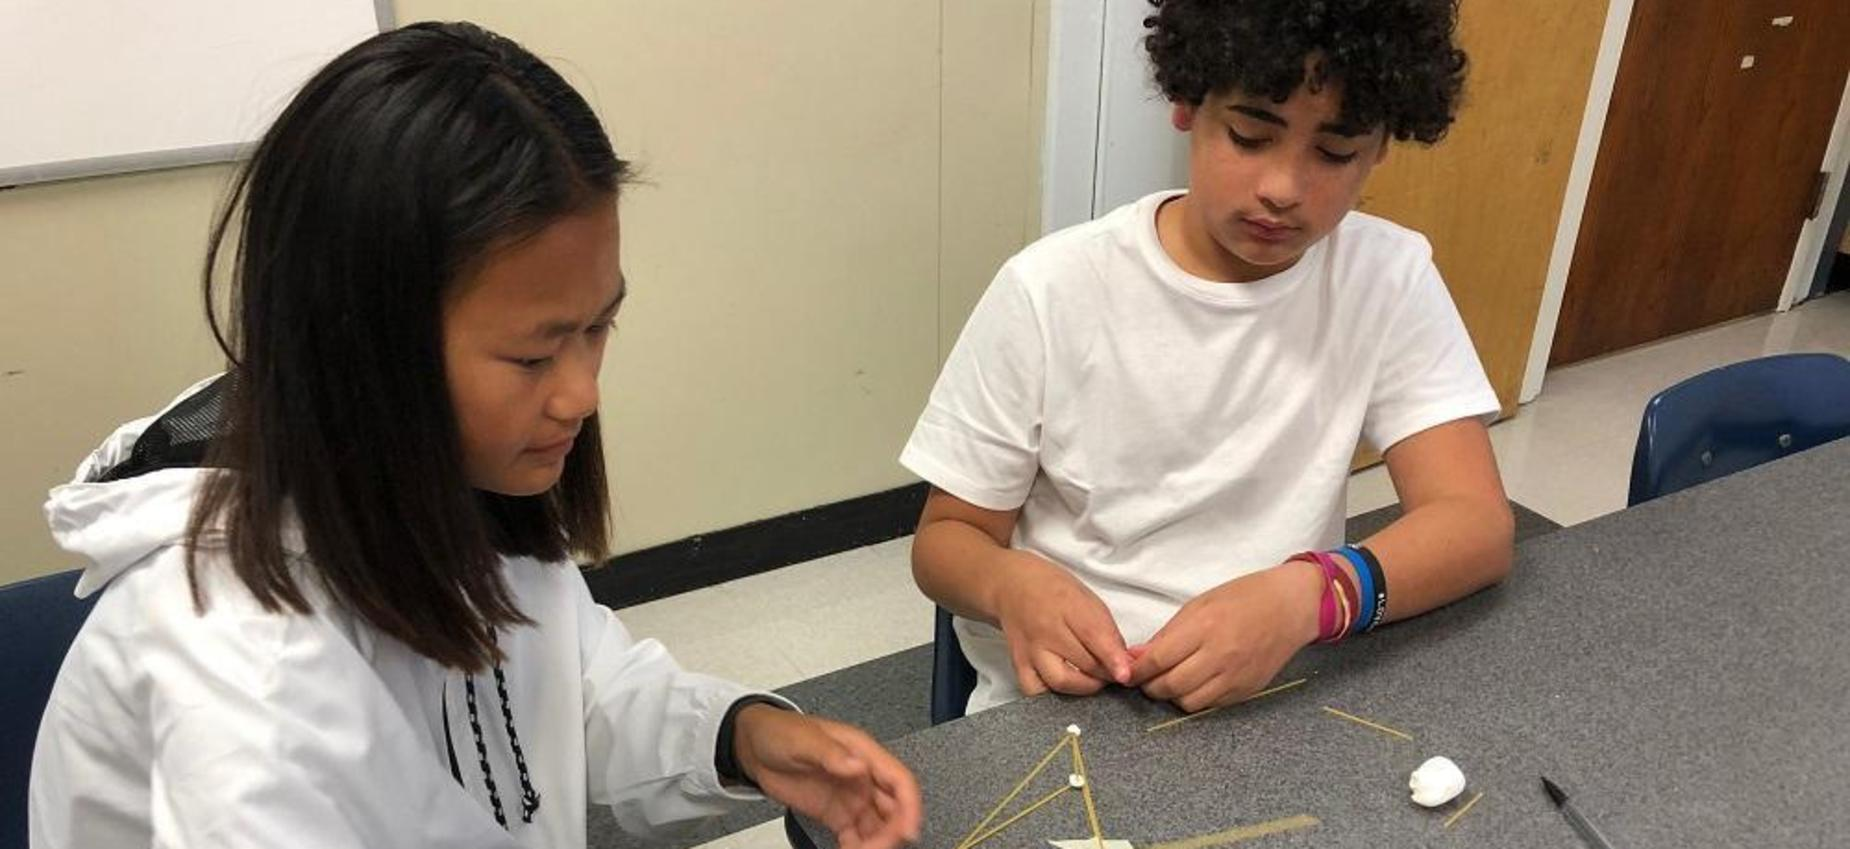 Two students work on a project at a table.